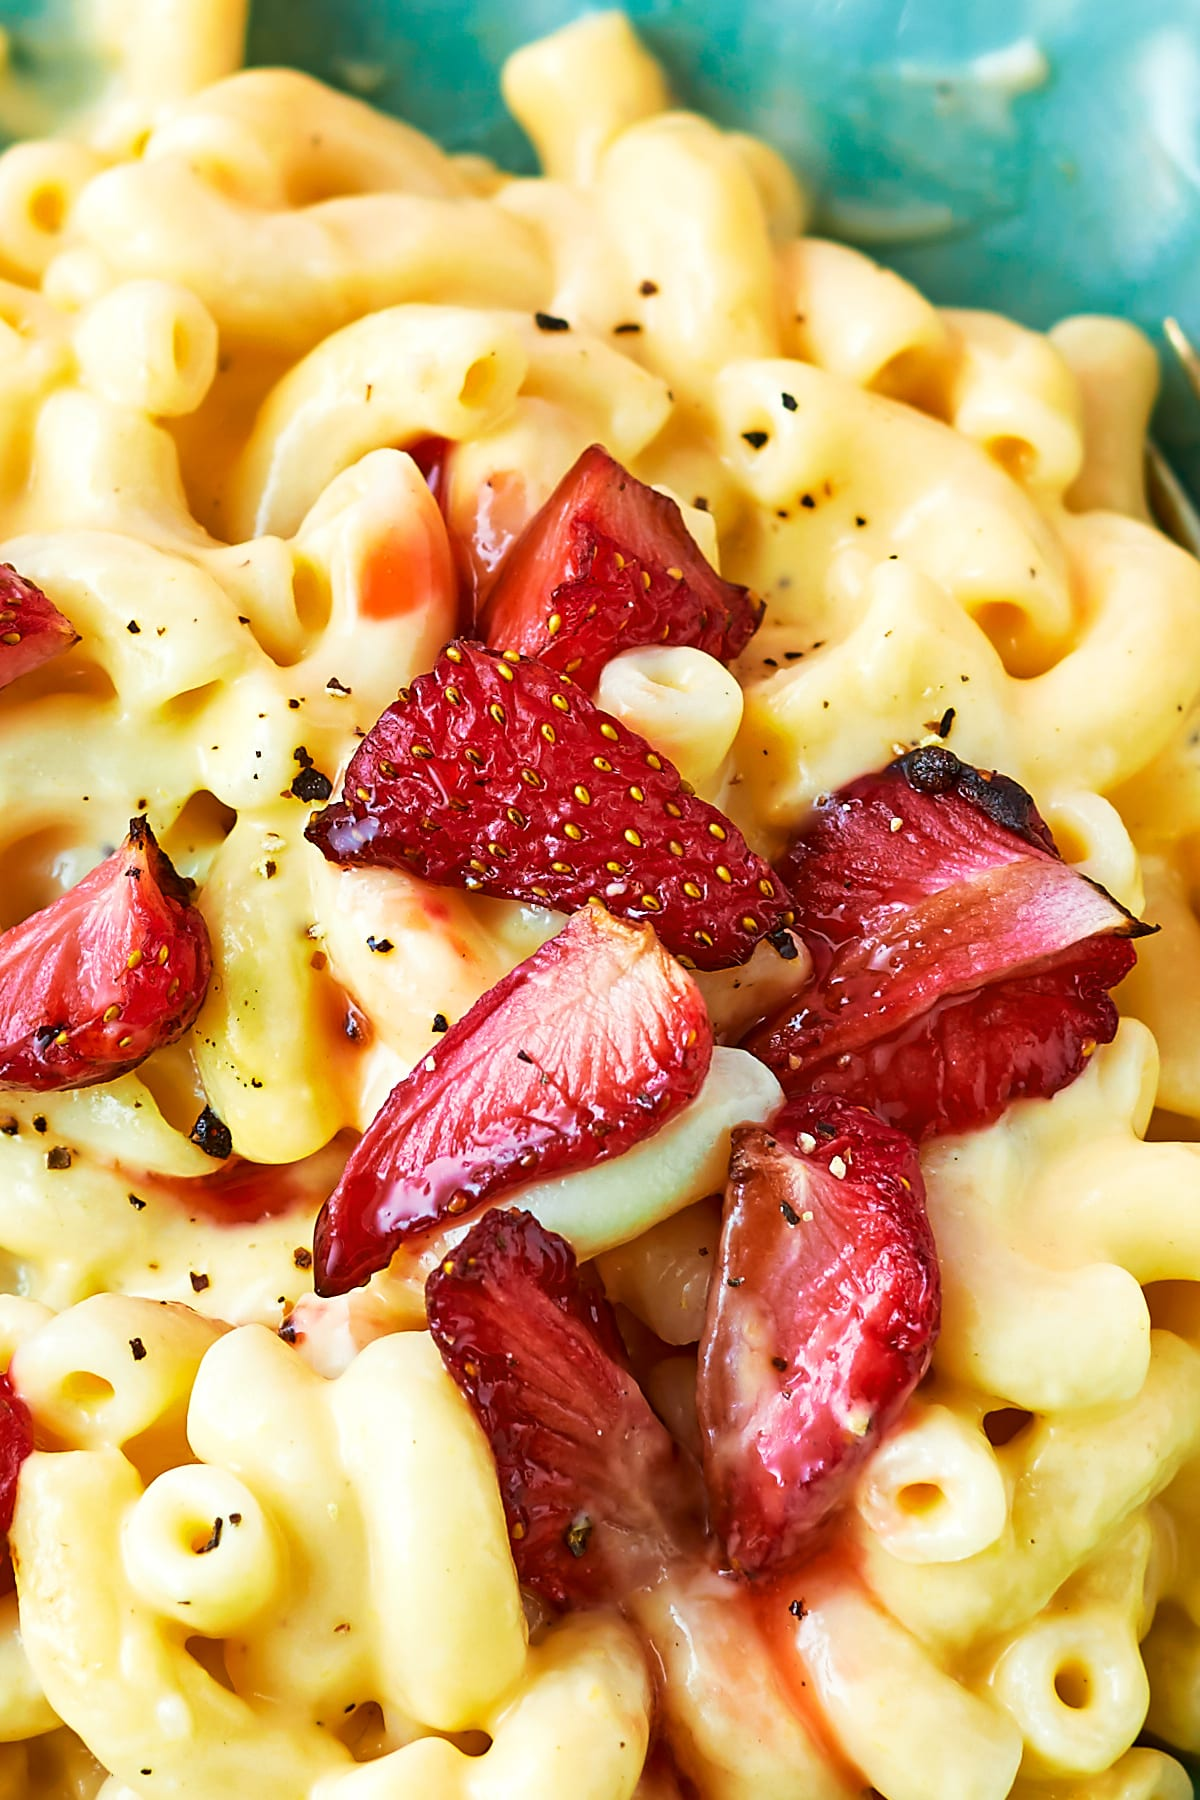 Close up of a bowl of strawberry pasta: macaroni in a cheese and butternut squash sauce, topped with roasted balsamic strawberries.